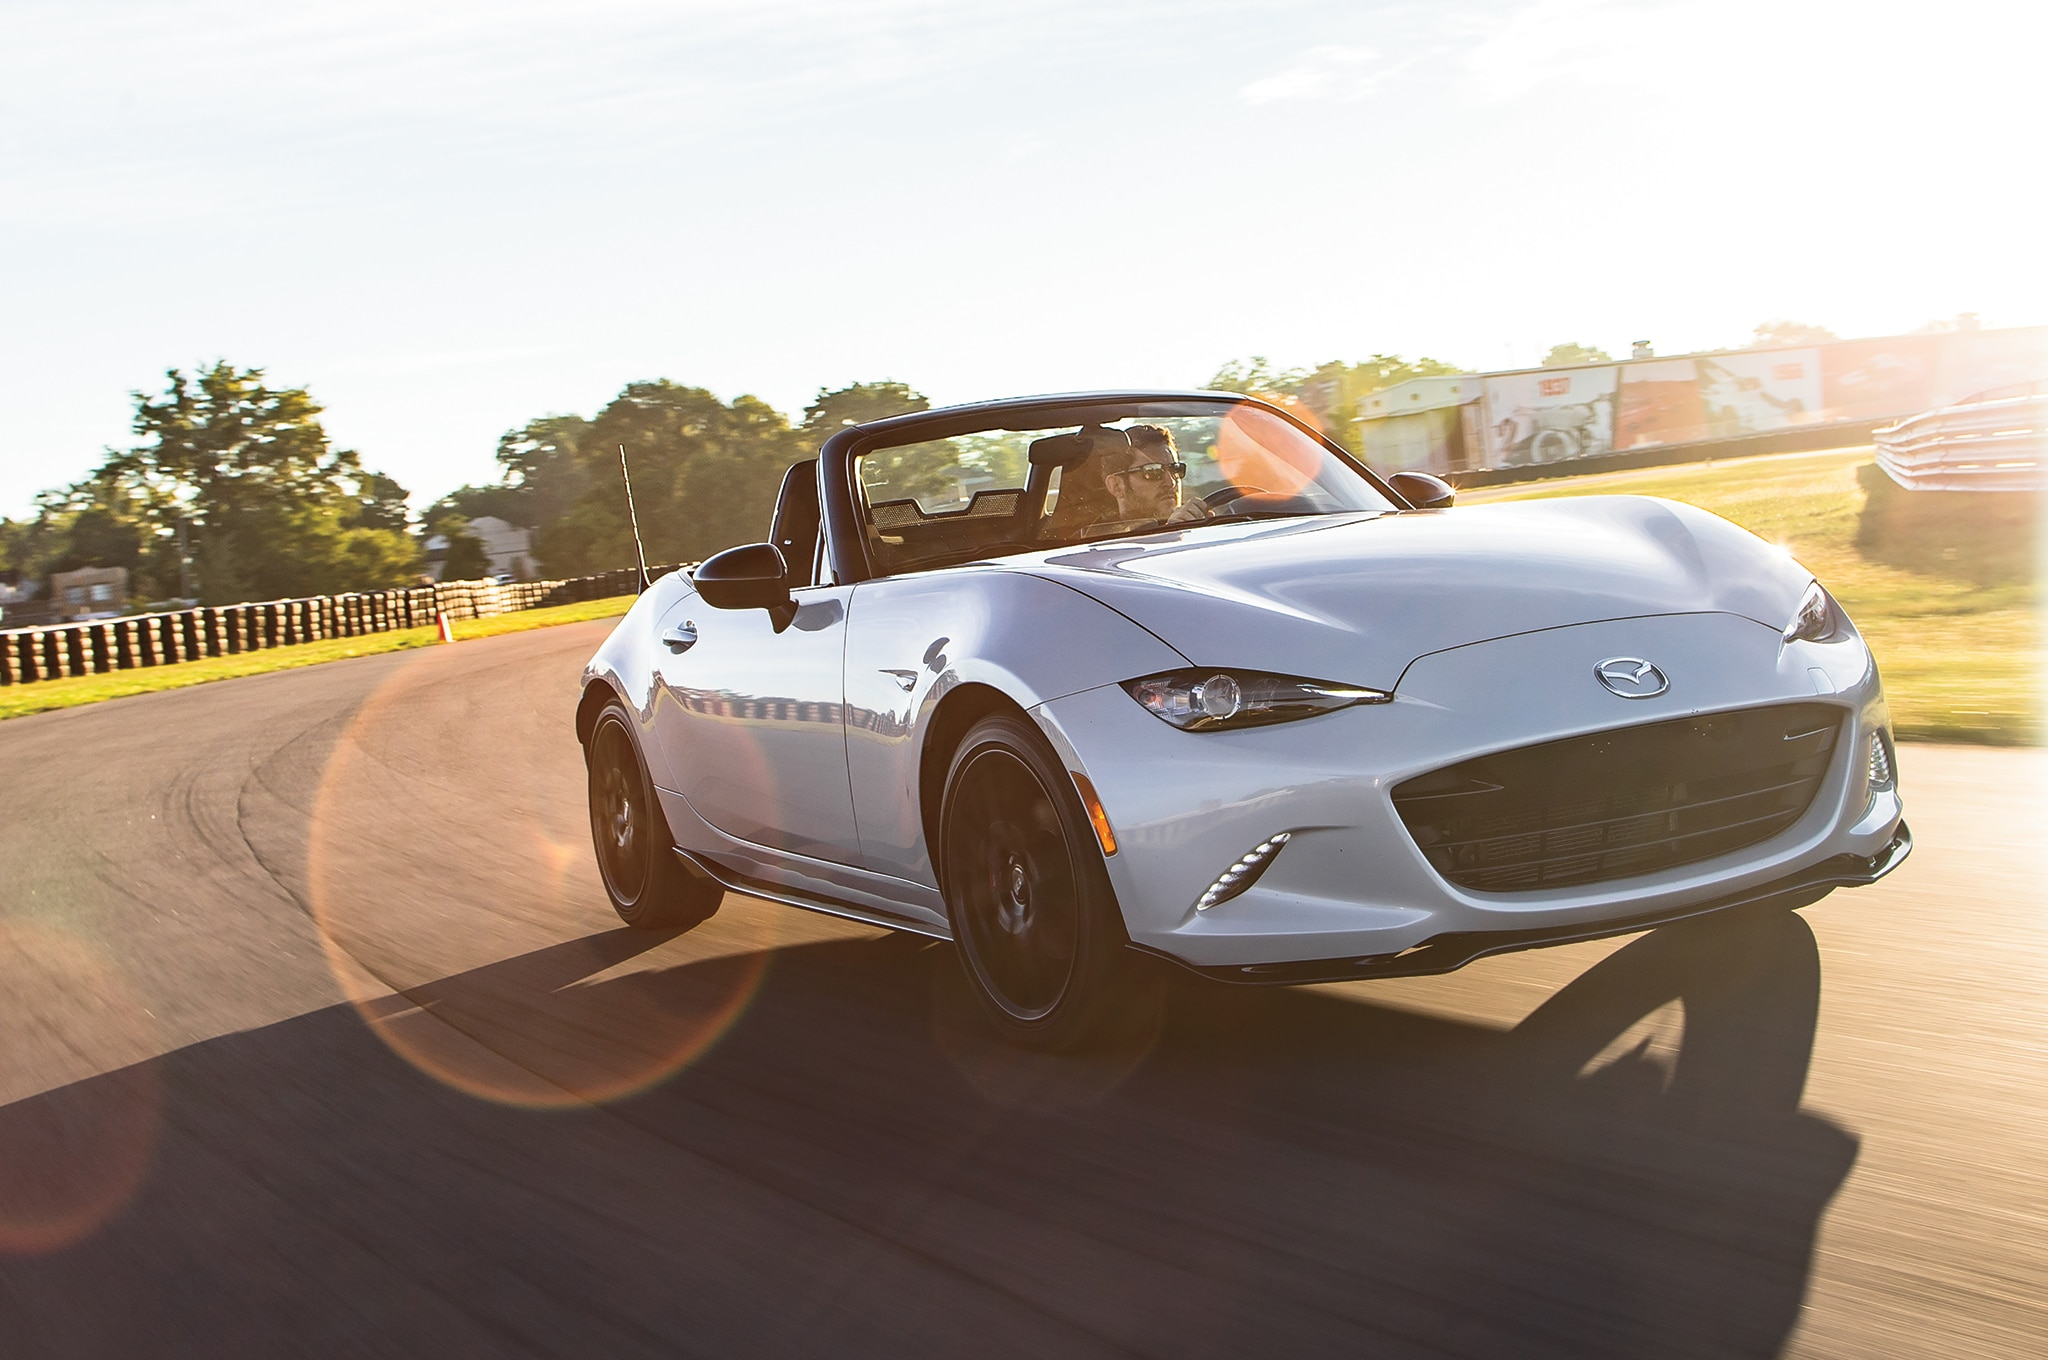 2016 Mazda MX 5 Miata Club